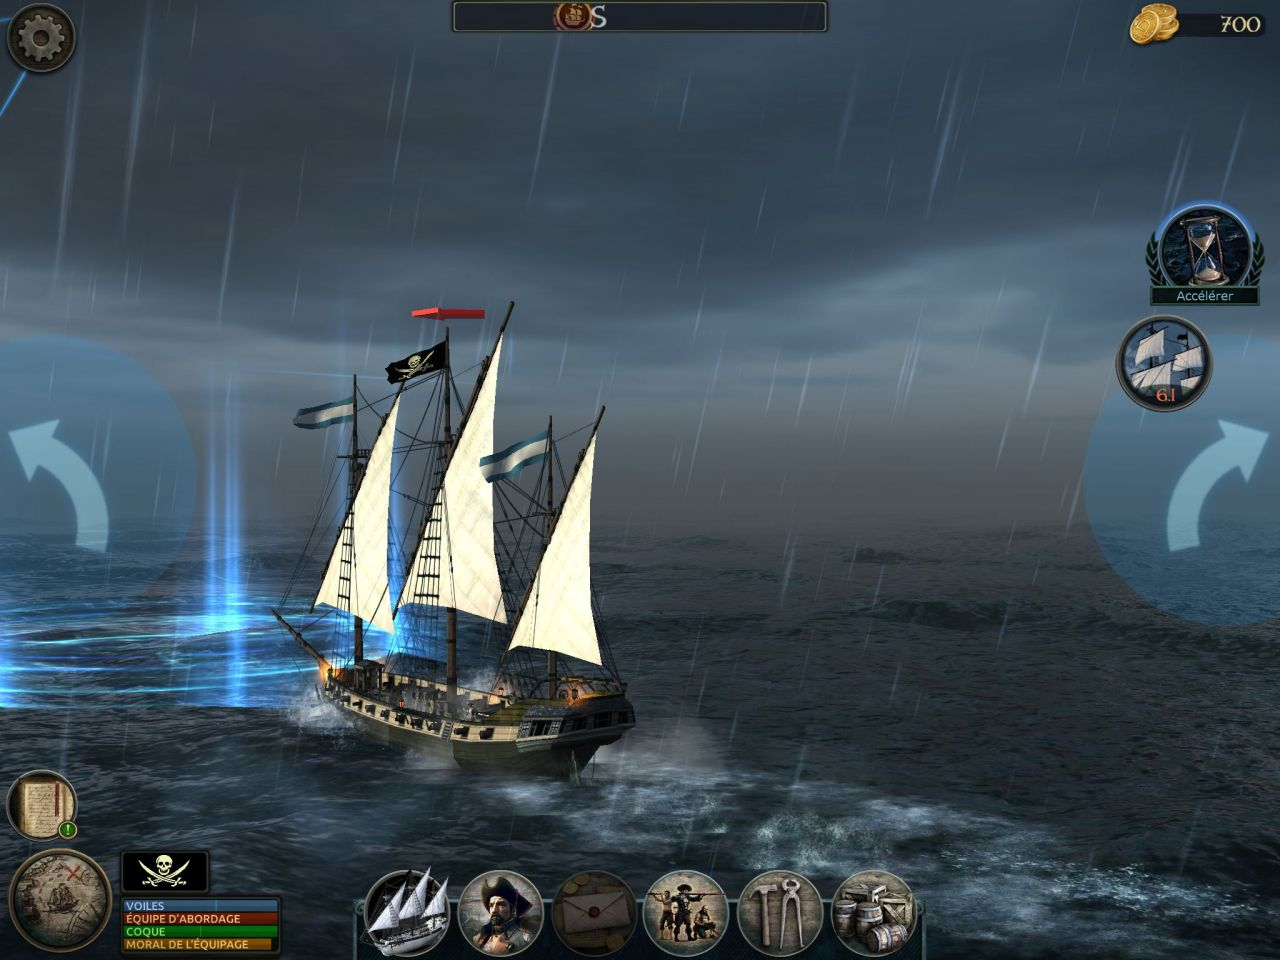 Tempest: Pirate Action RPG (copie d'écran 11 sur Android)